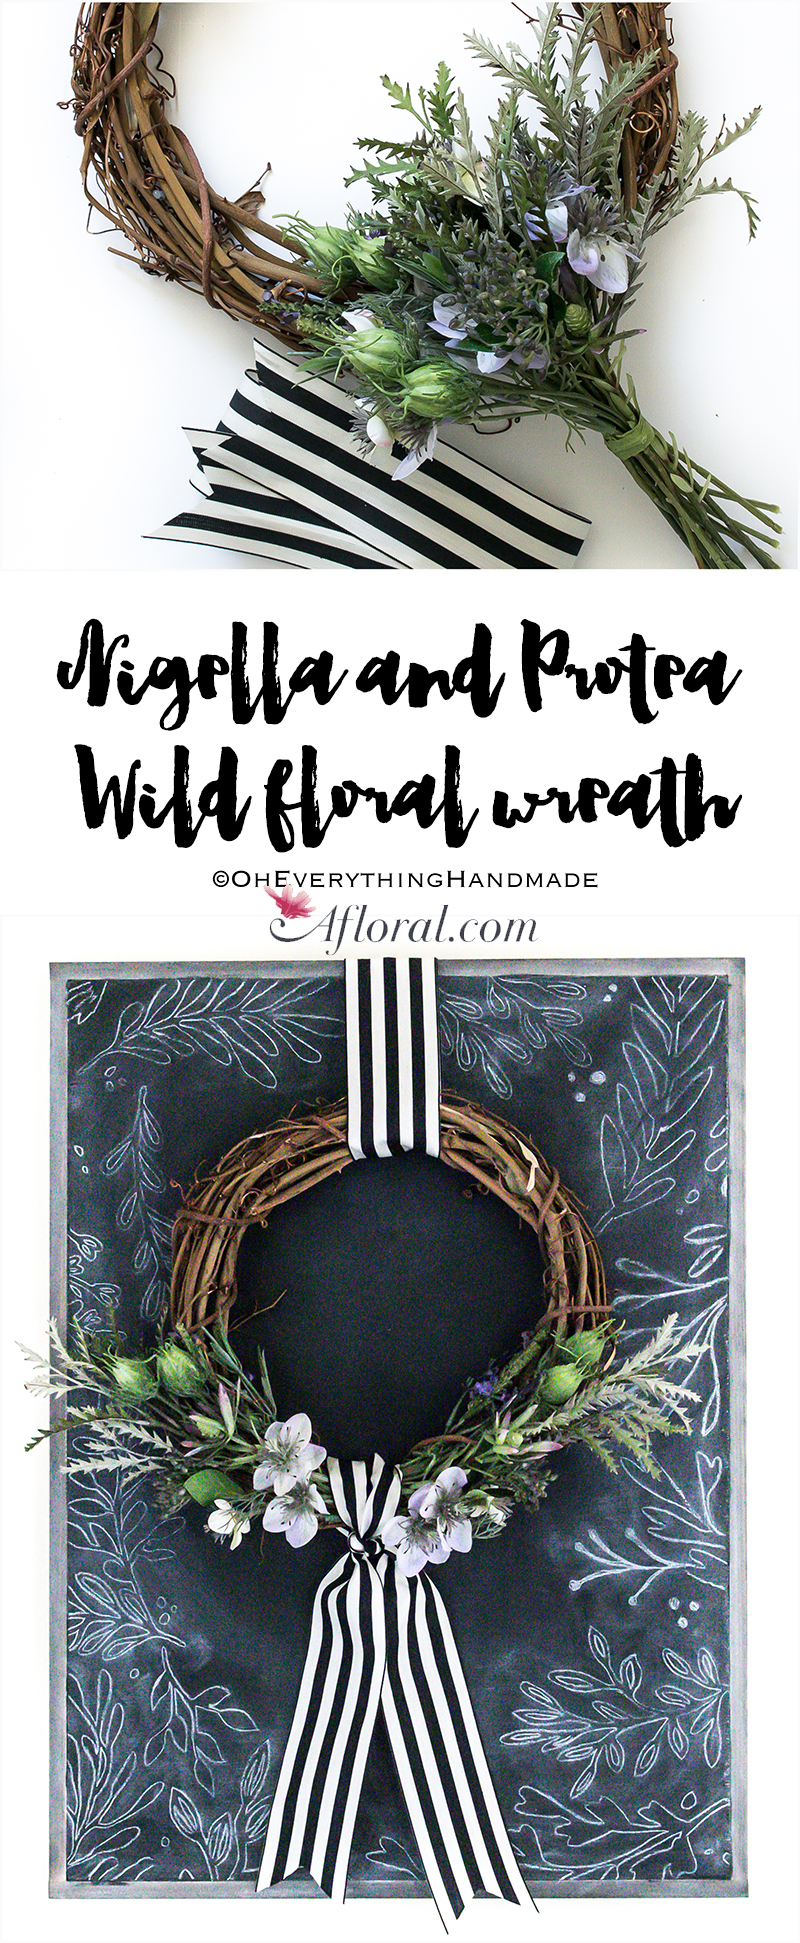 Nigella and Protea Wild floral wreath